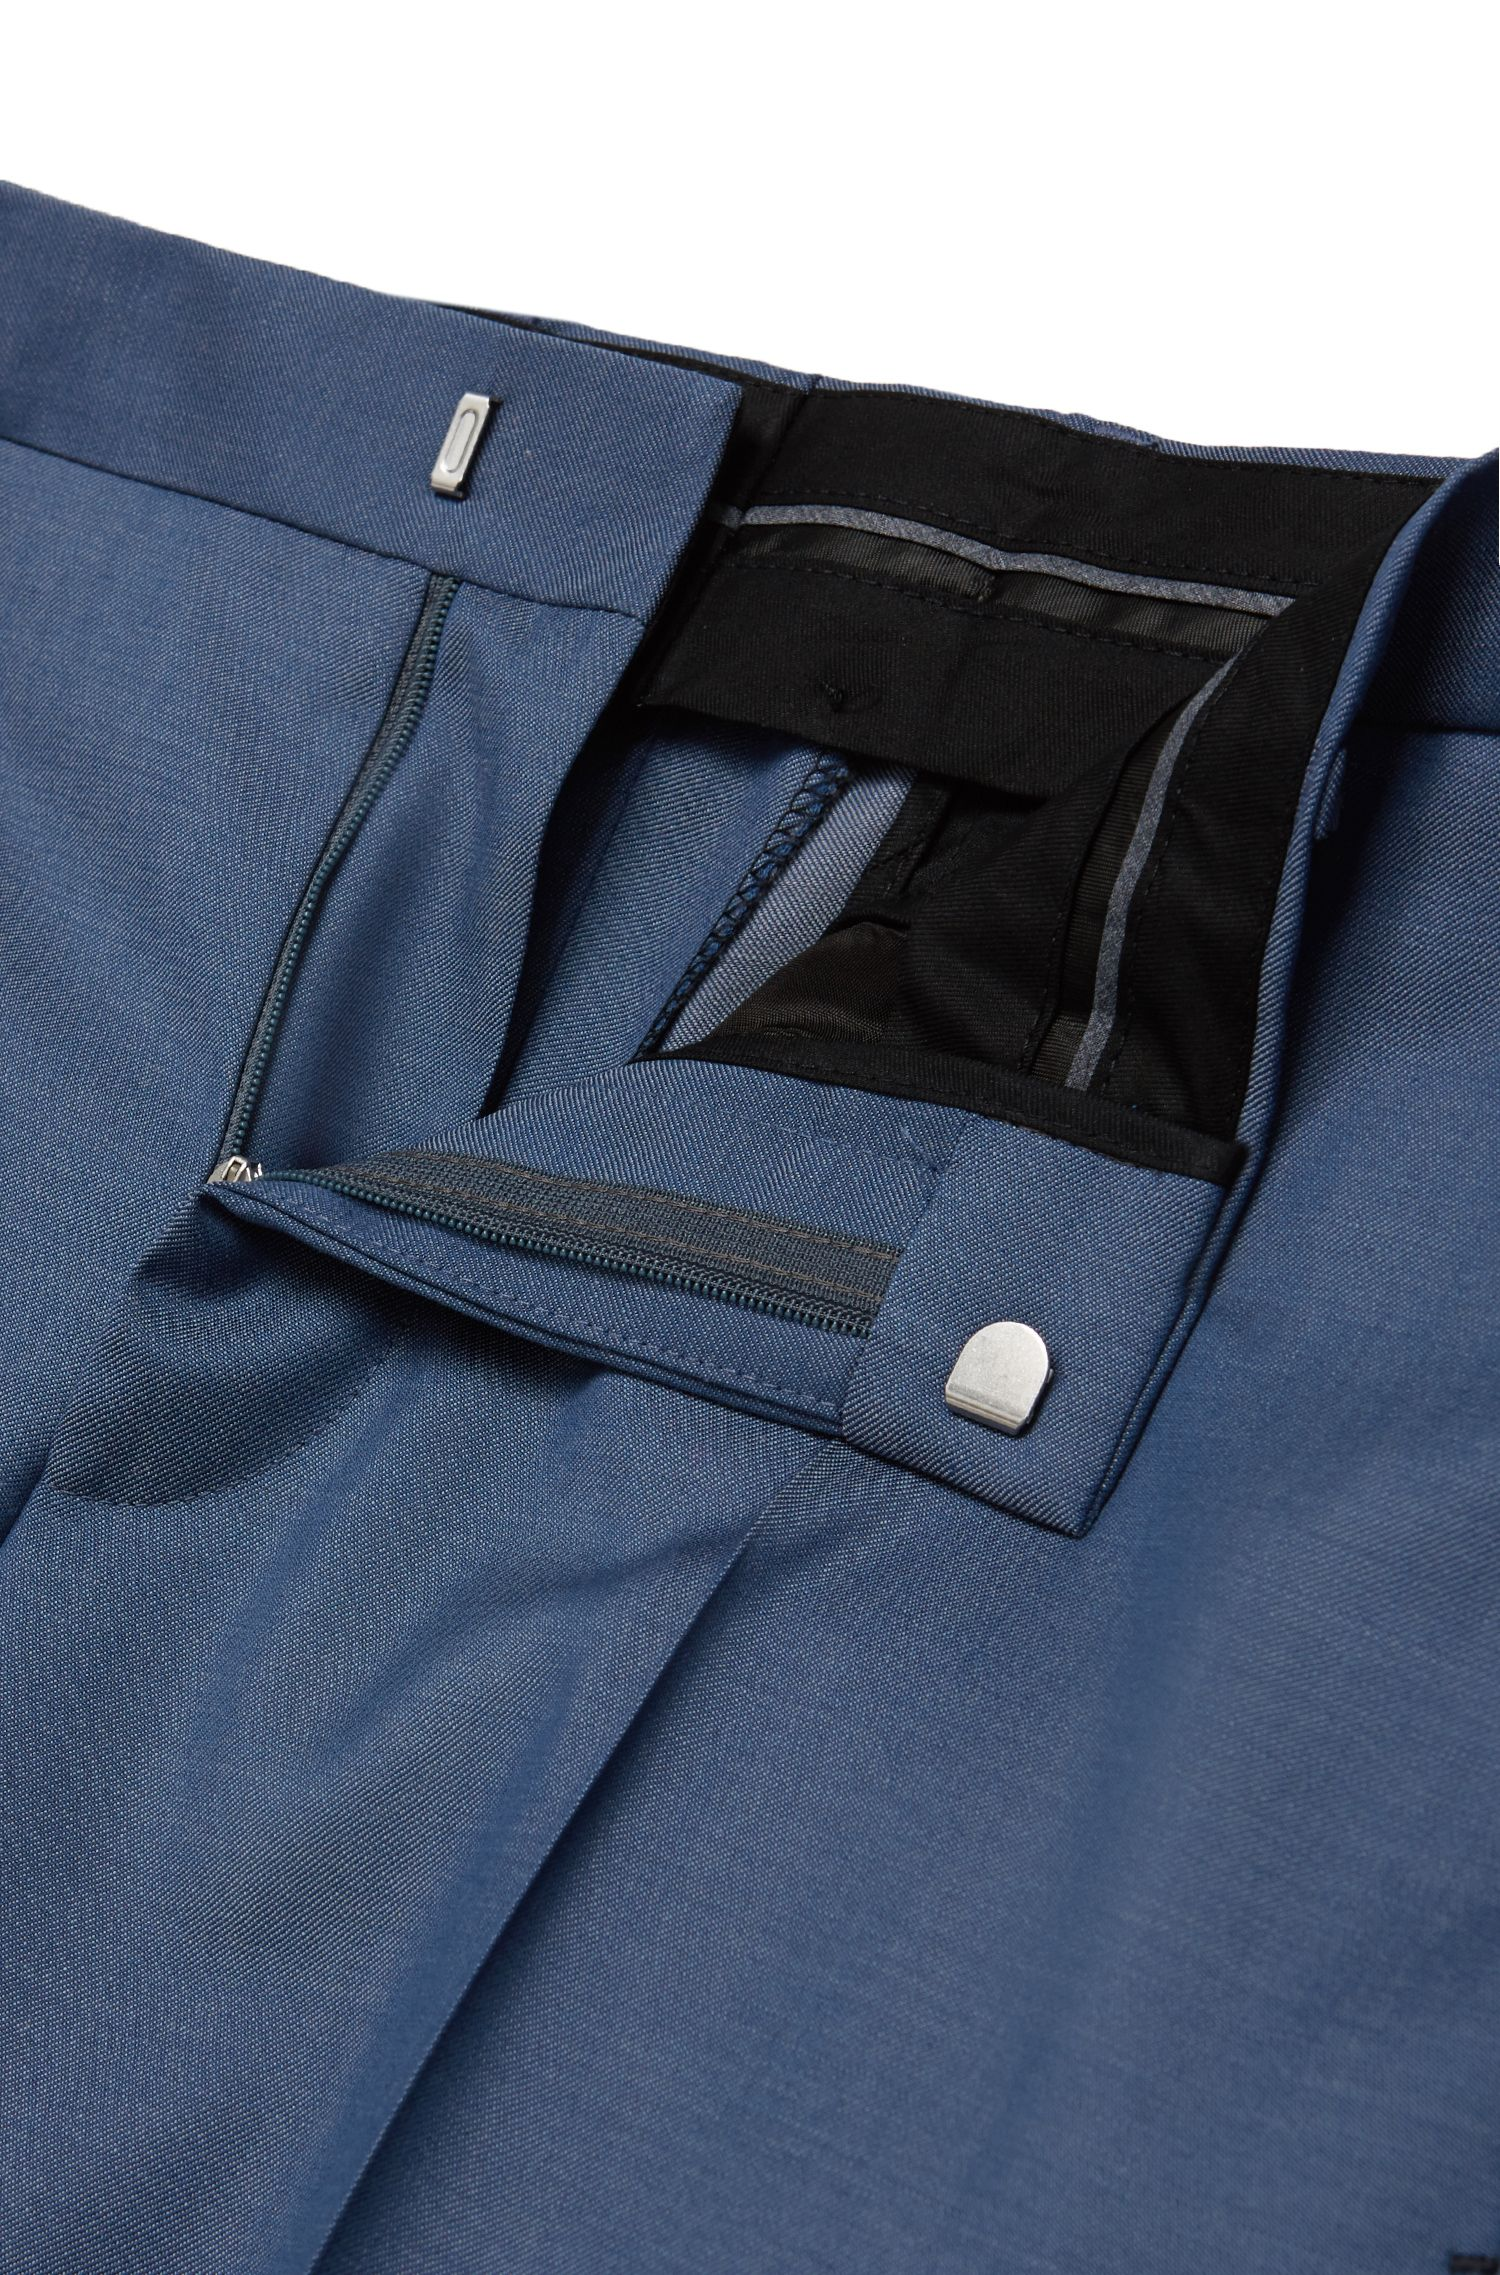 'Genesis' | Slim Fit, Italian Super 100 Virgin Wool Dress Pants, Light Blue